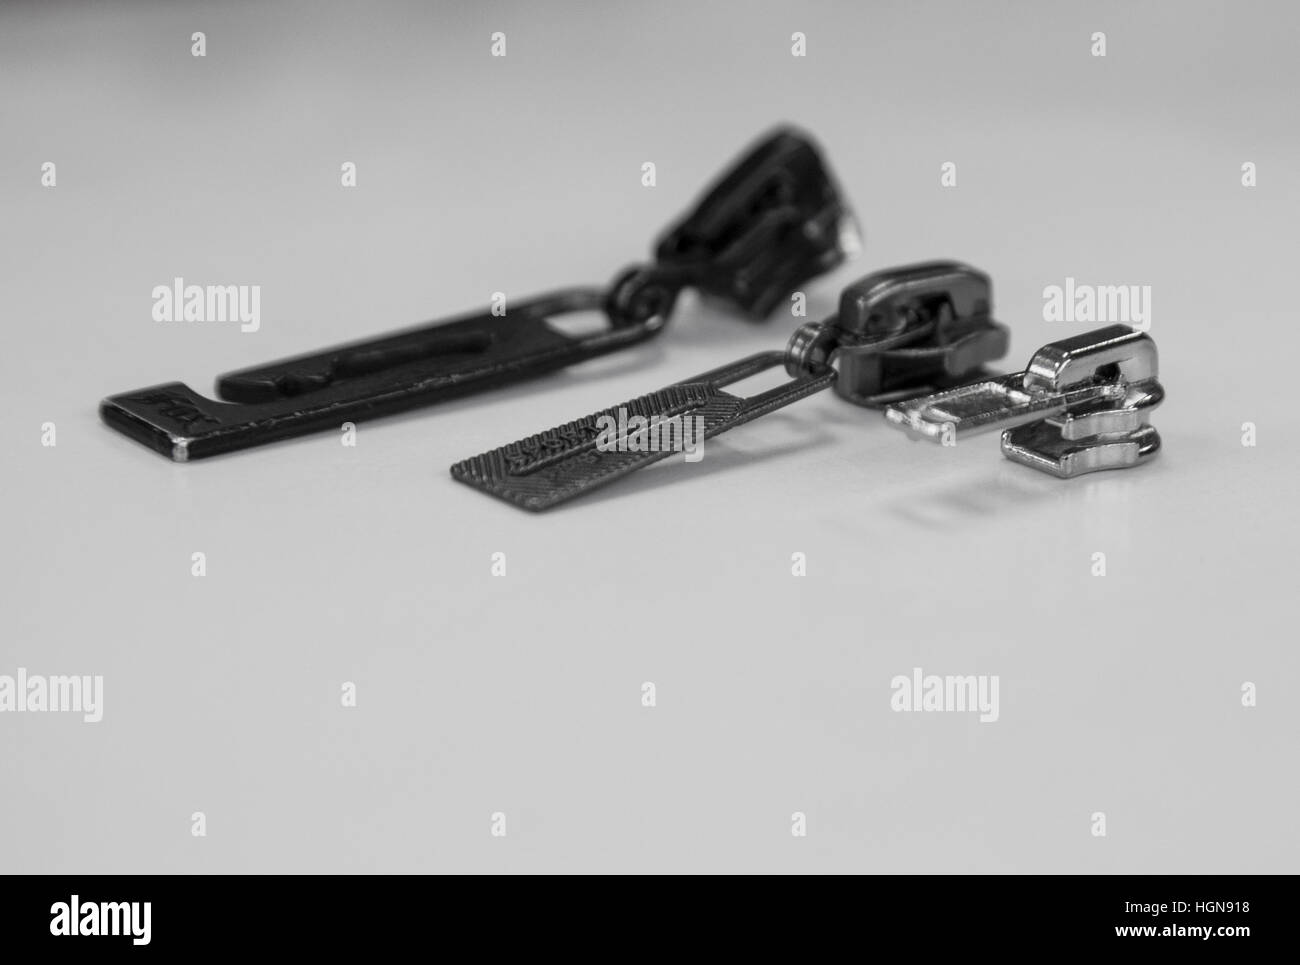 three zippers all different sizes - Stock Image